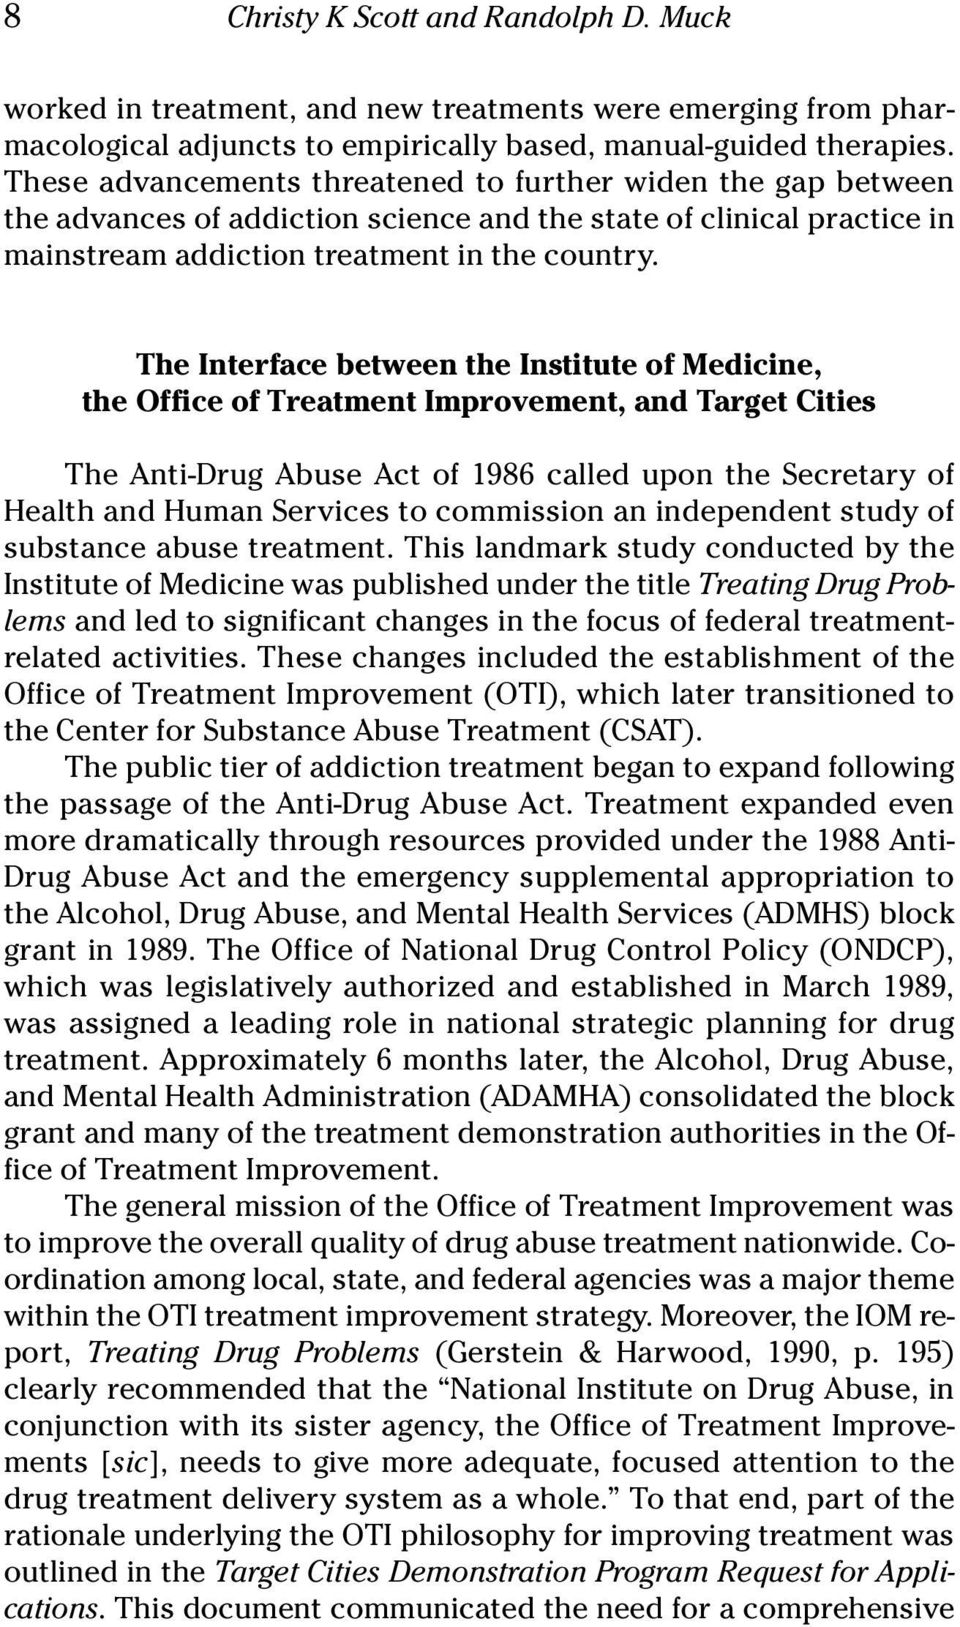 The Interface between the Institute of Medicine, the Office of Treatment Improvement, and Target Cities The Anti-Drug Abuse Act of 1986 called upon the Secretary of Health and Human Services to